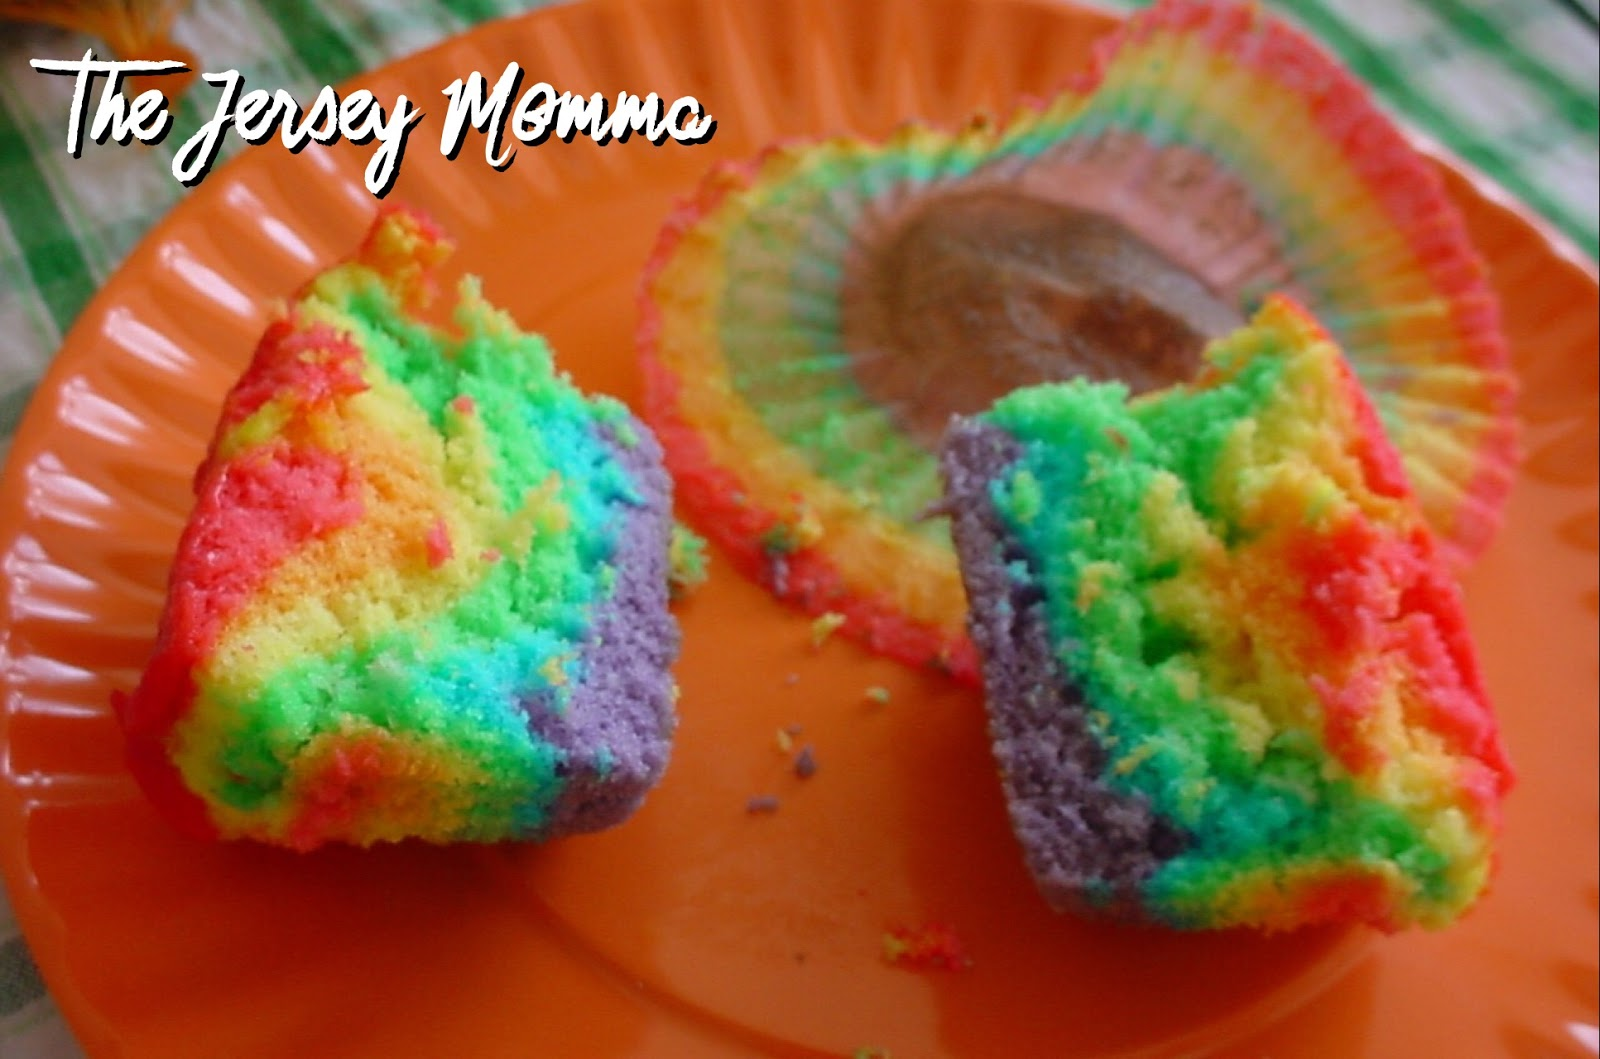 The Jersey Momma: How to Make Rainbow Cupcakes: A DIY Tutorial